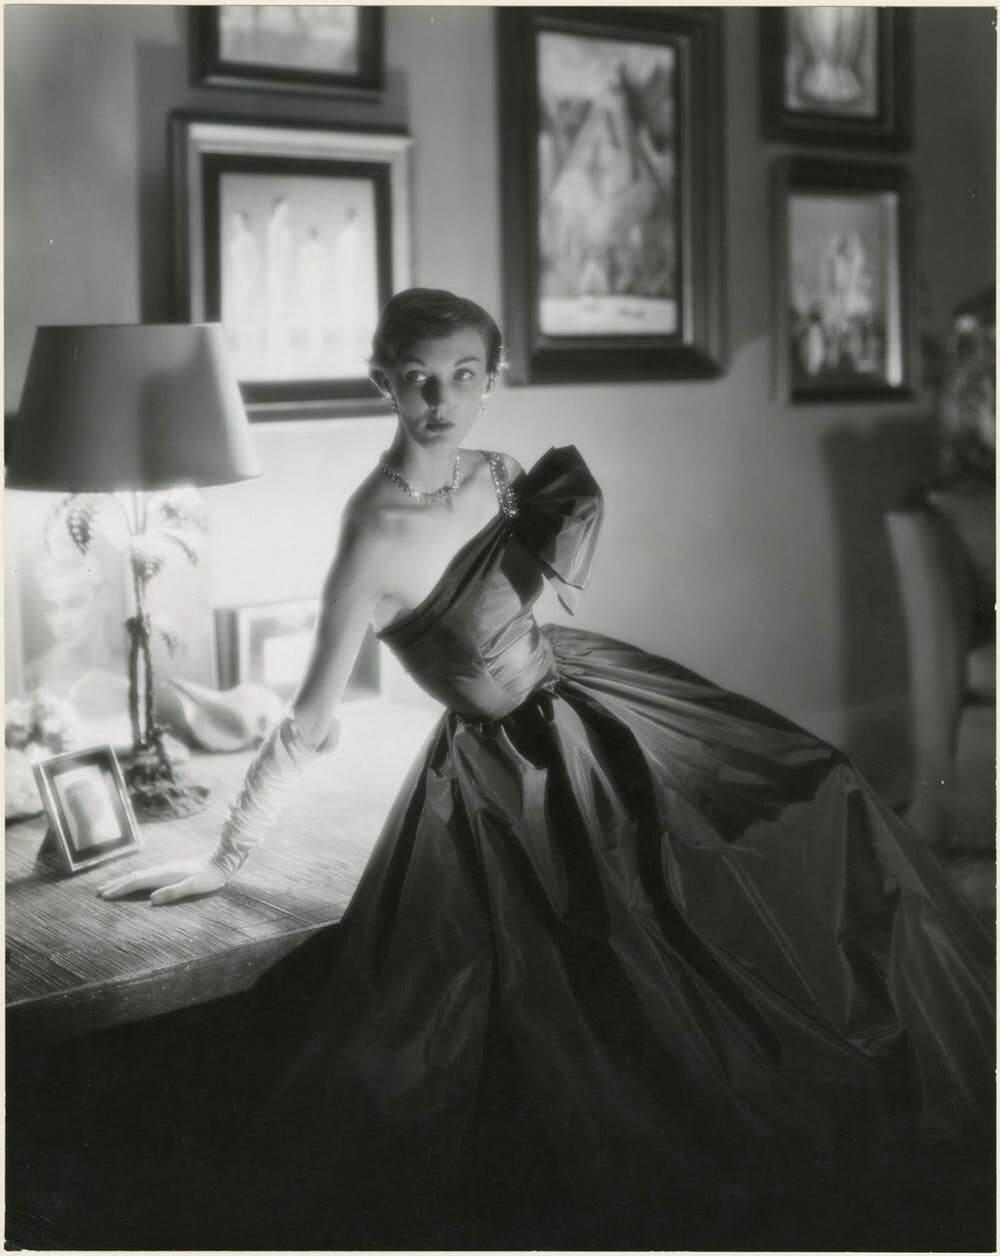 A George Platt Lynes's photograph that appeared in a 1948 issue of Vogue. Gelatin silver print, 10-1/4 × 12-3/4 in. From the Collections of the Kinsey Institute, Indiana University. © Estate of George Platt Lynes.